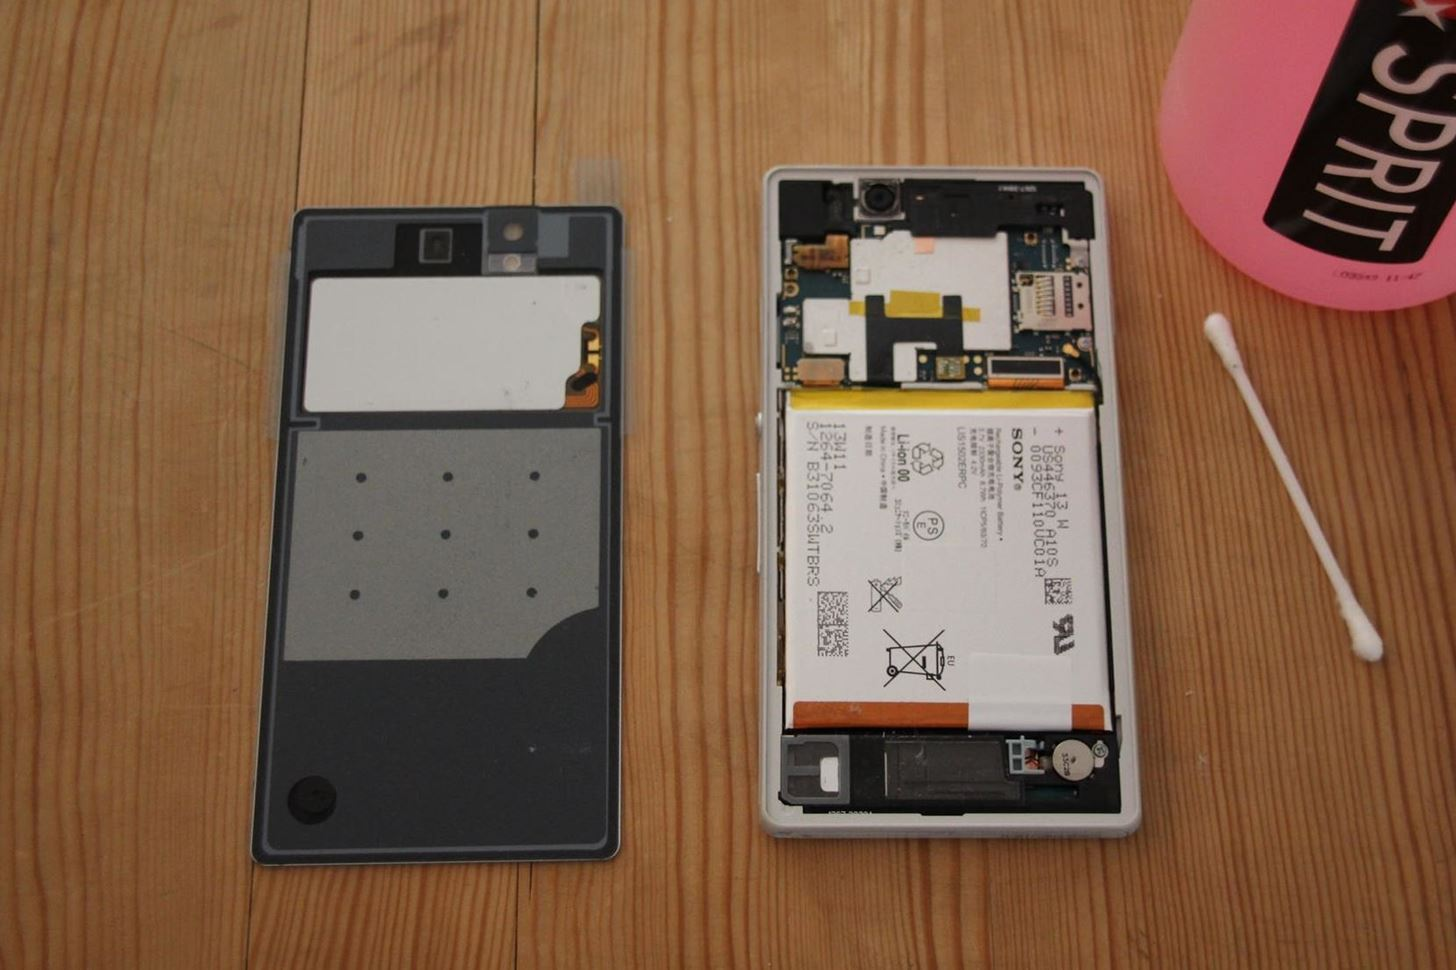 DIY Repair: The Basics to Repairing Your Phone Without Breaking It